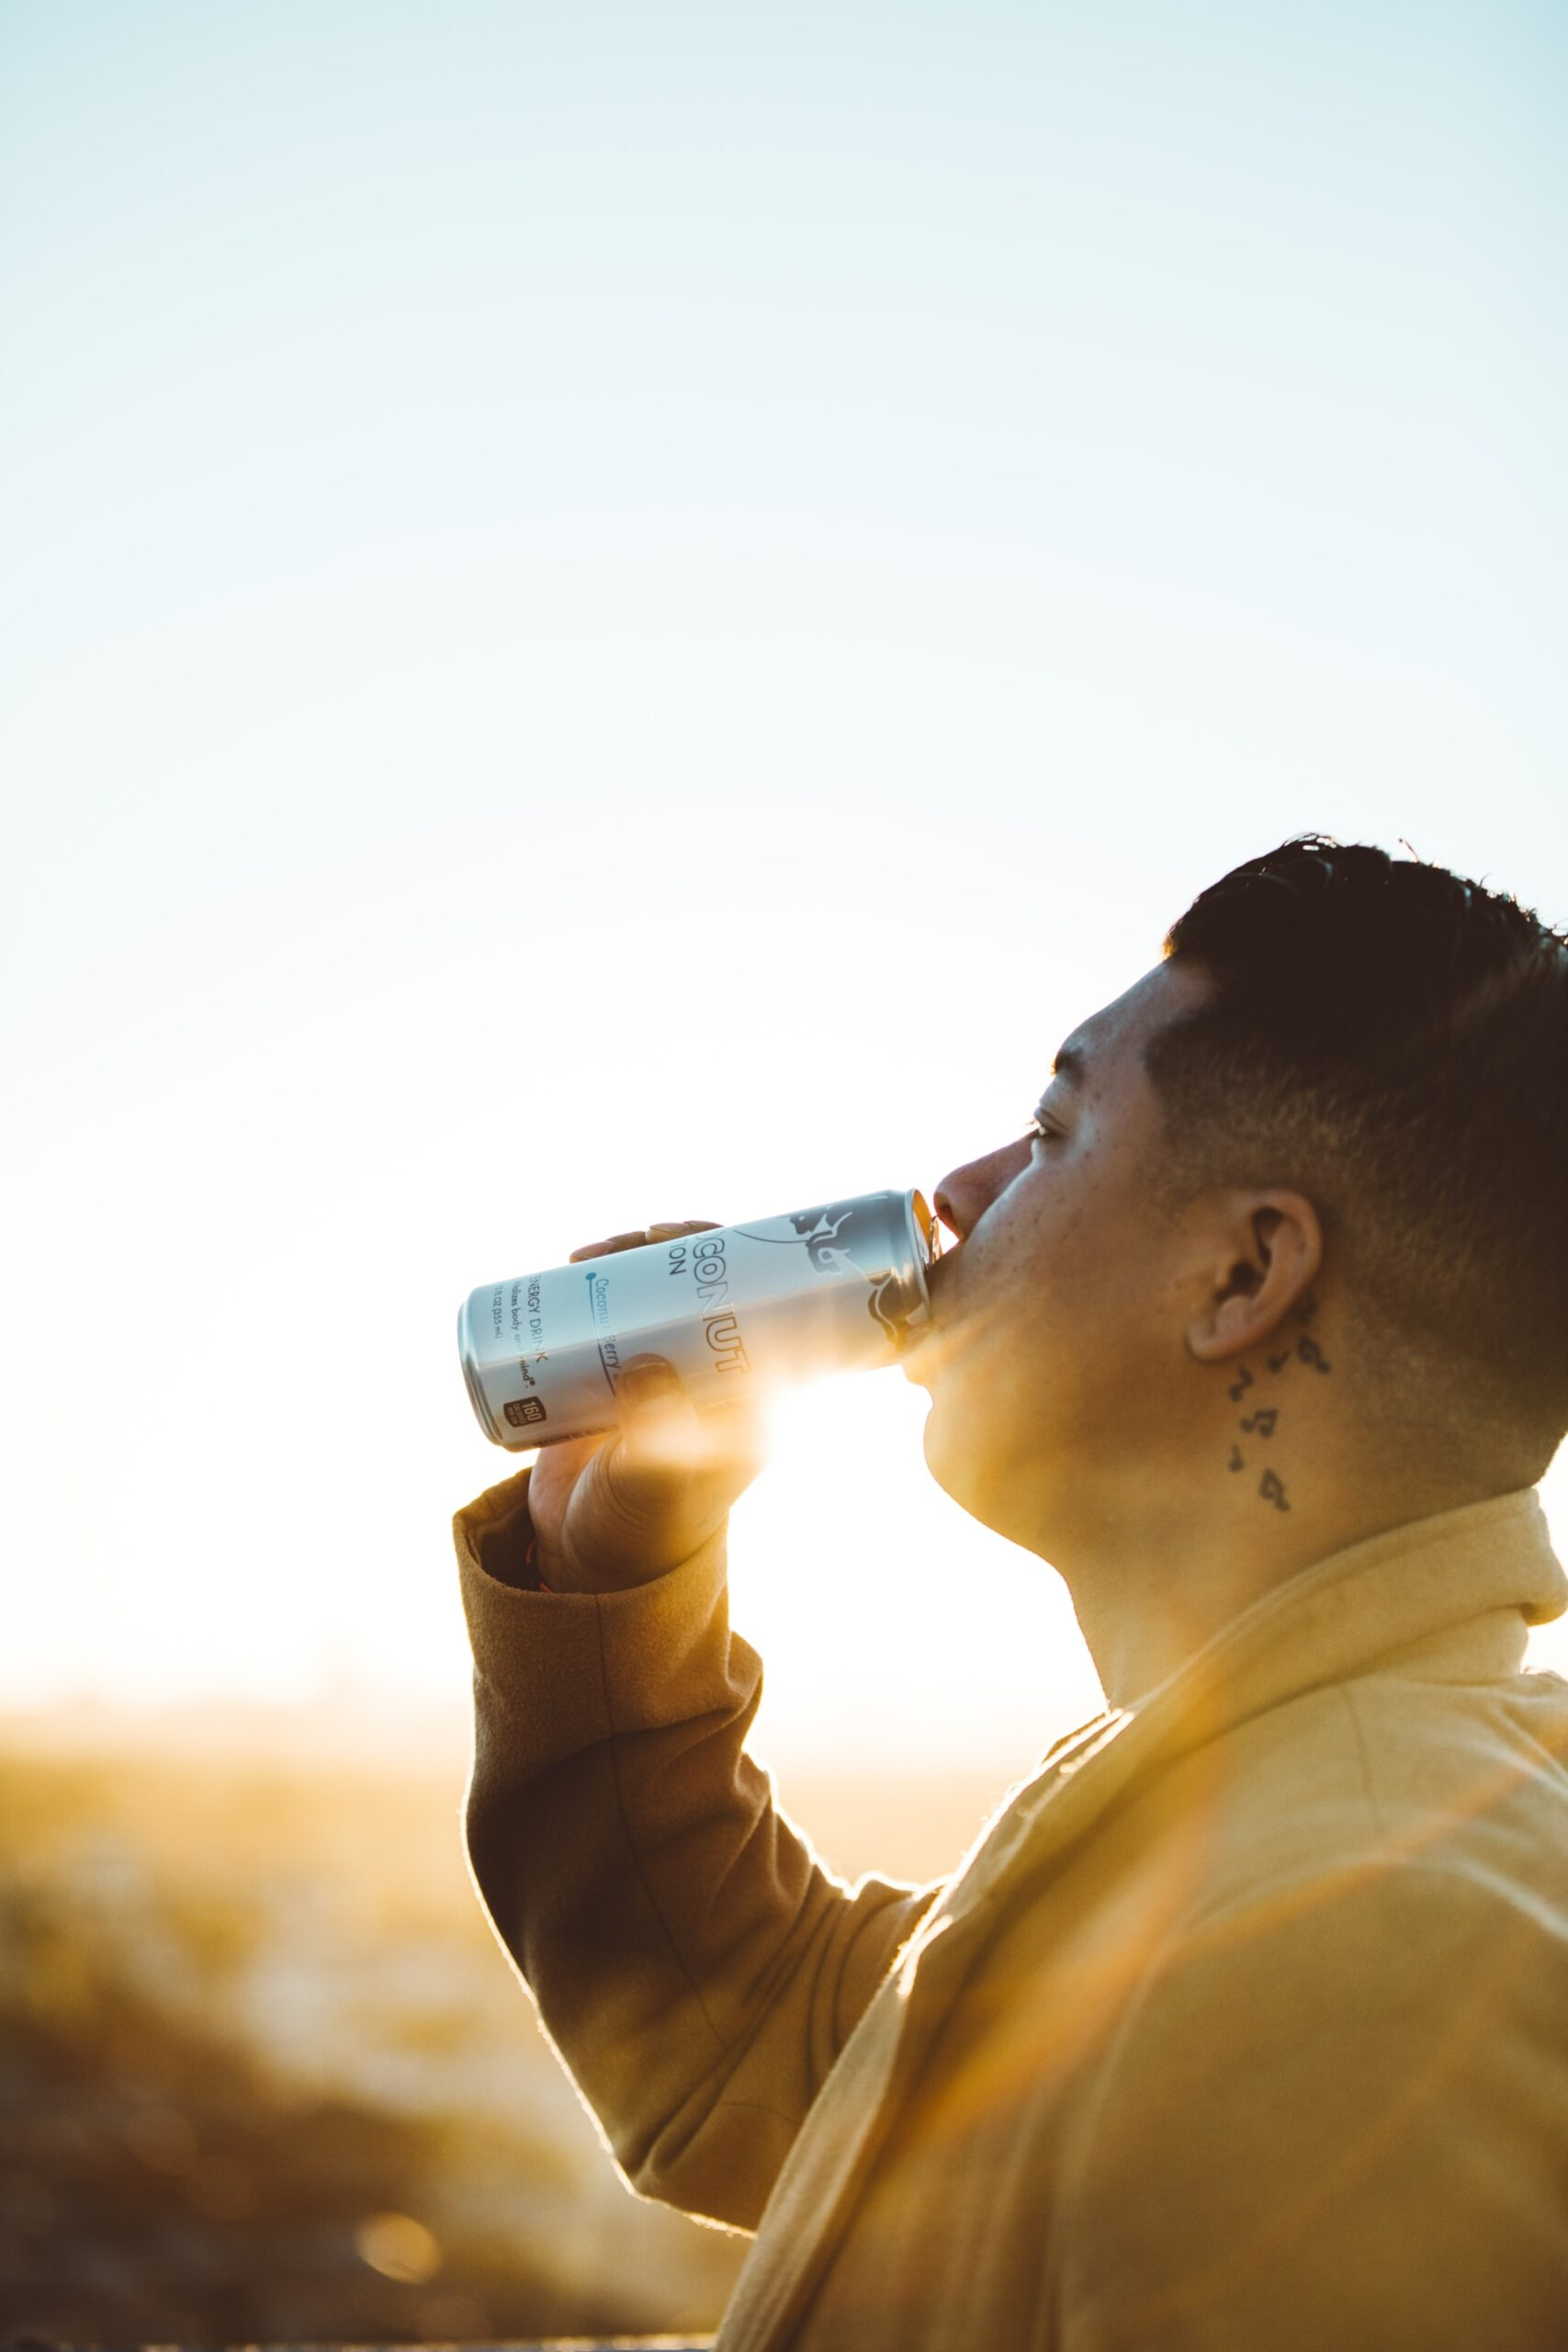 Energy drinks linked to stress and anxiety in young adult males